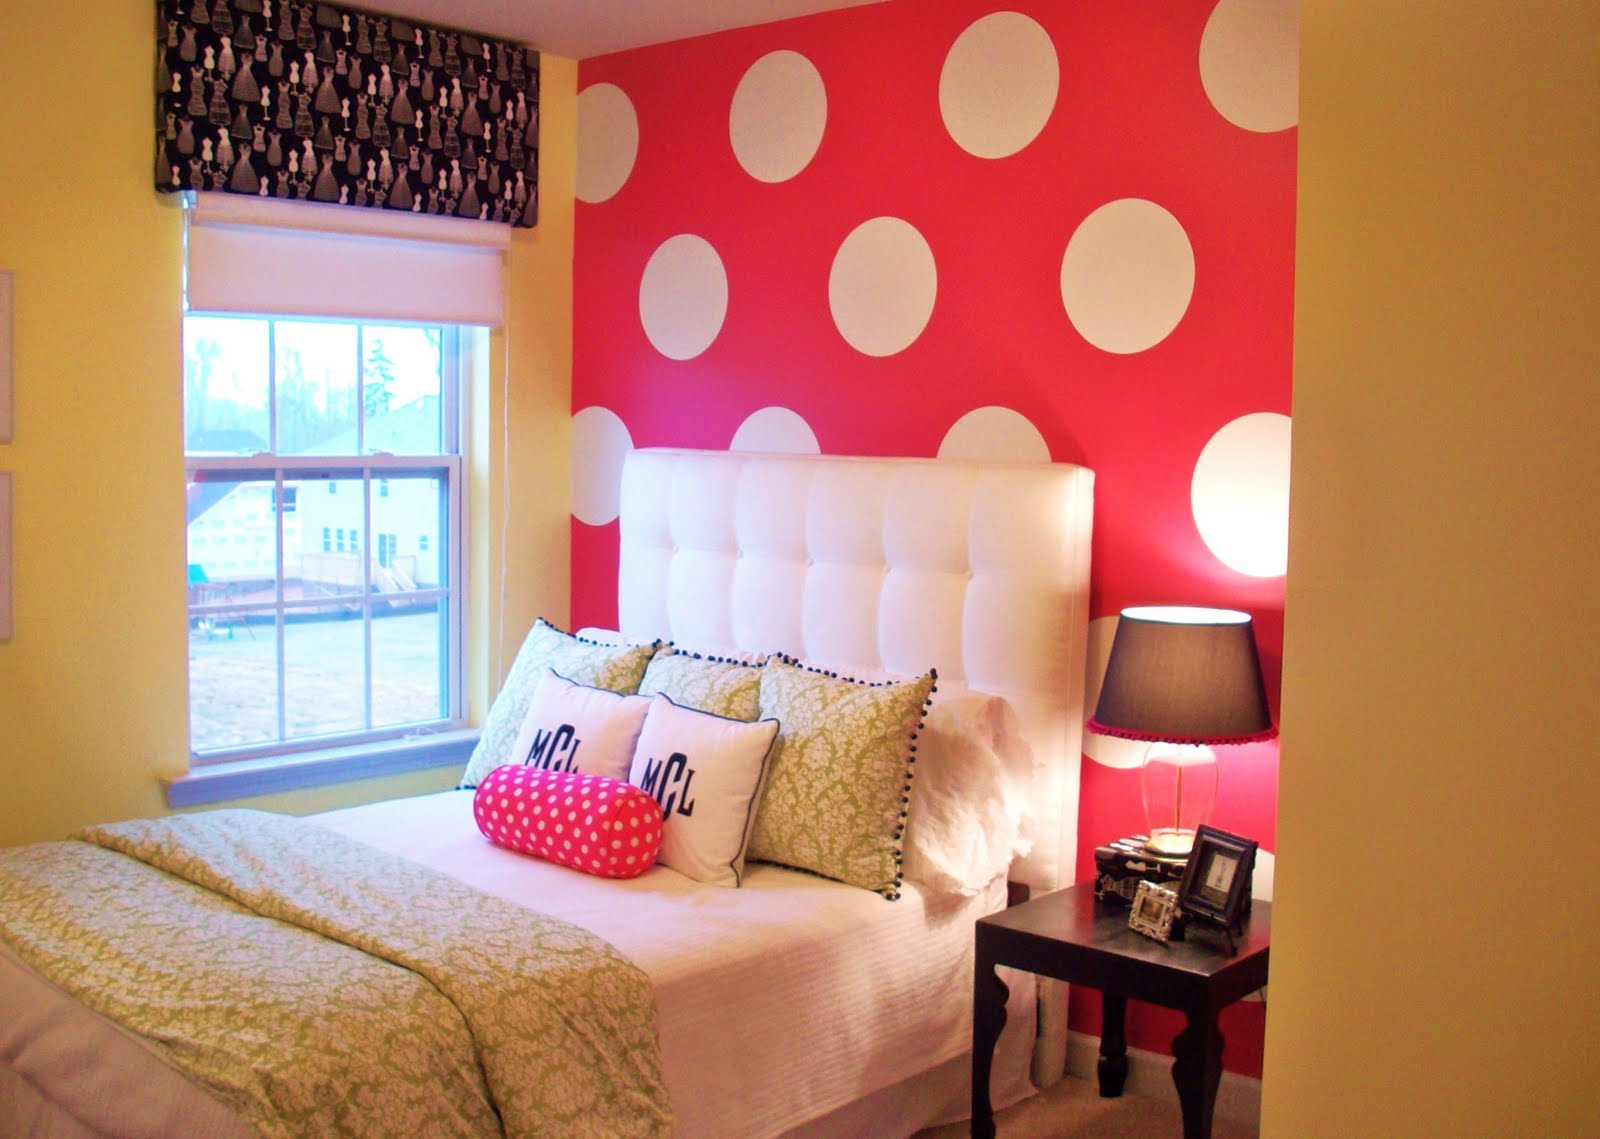 http://www.home-designing.com/wp-content/uploads/2013/02/4-teen-girls-bedroom-47.jpeg